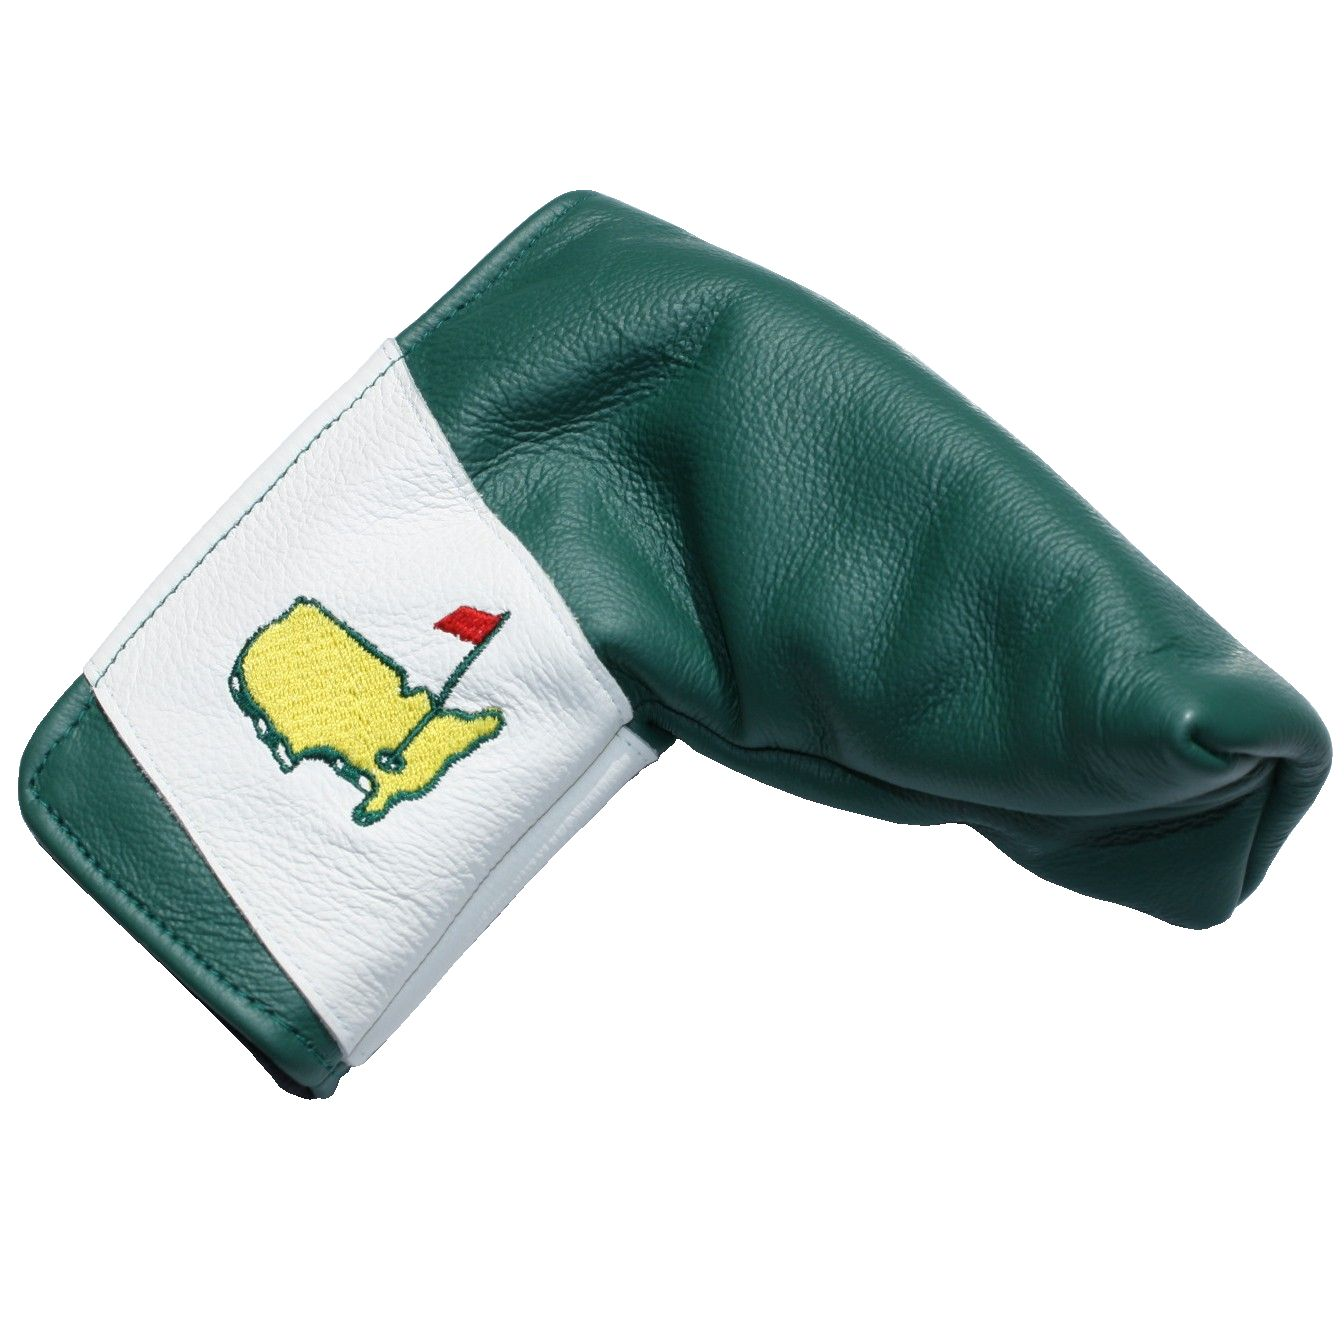 lot detail undated masters logo putter cover 2015